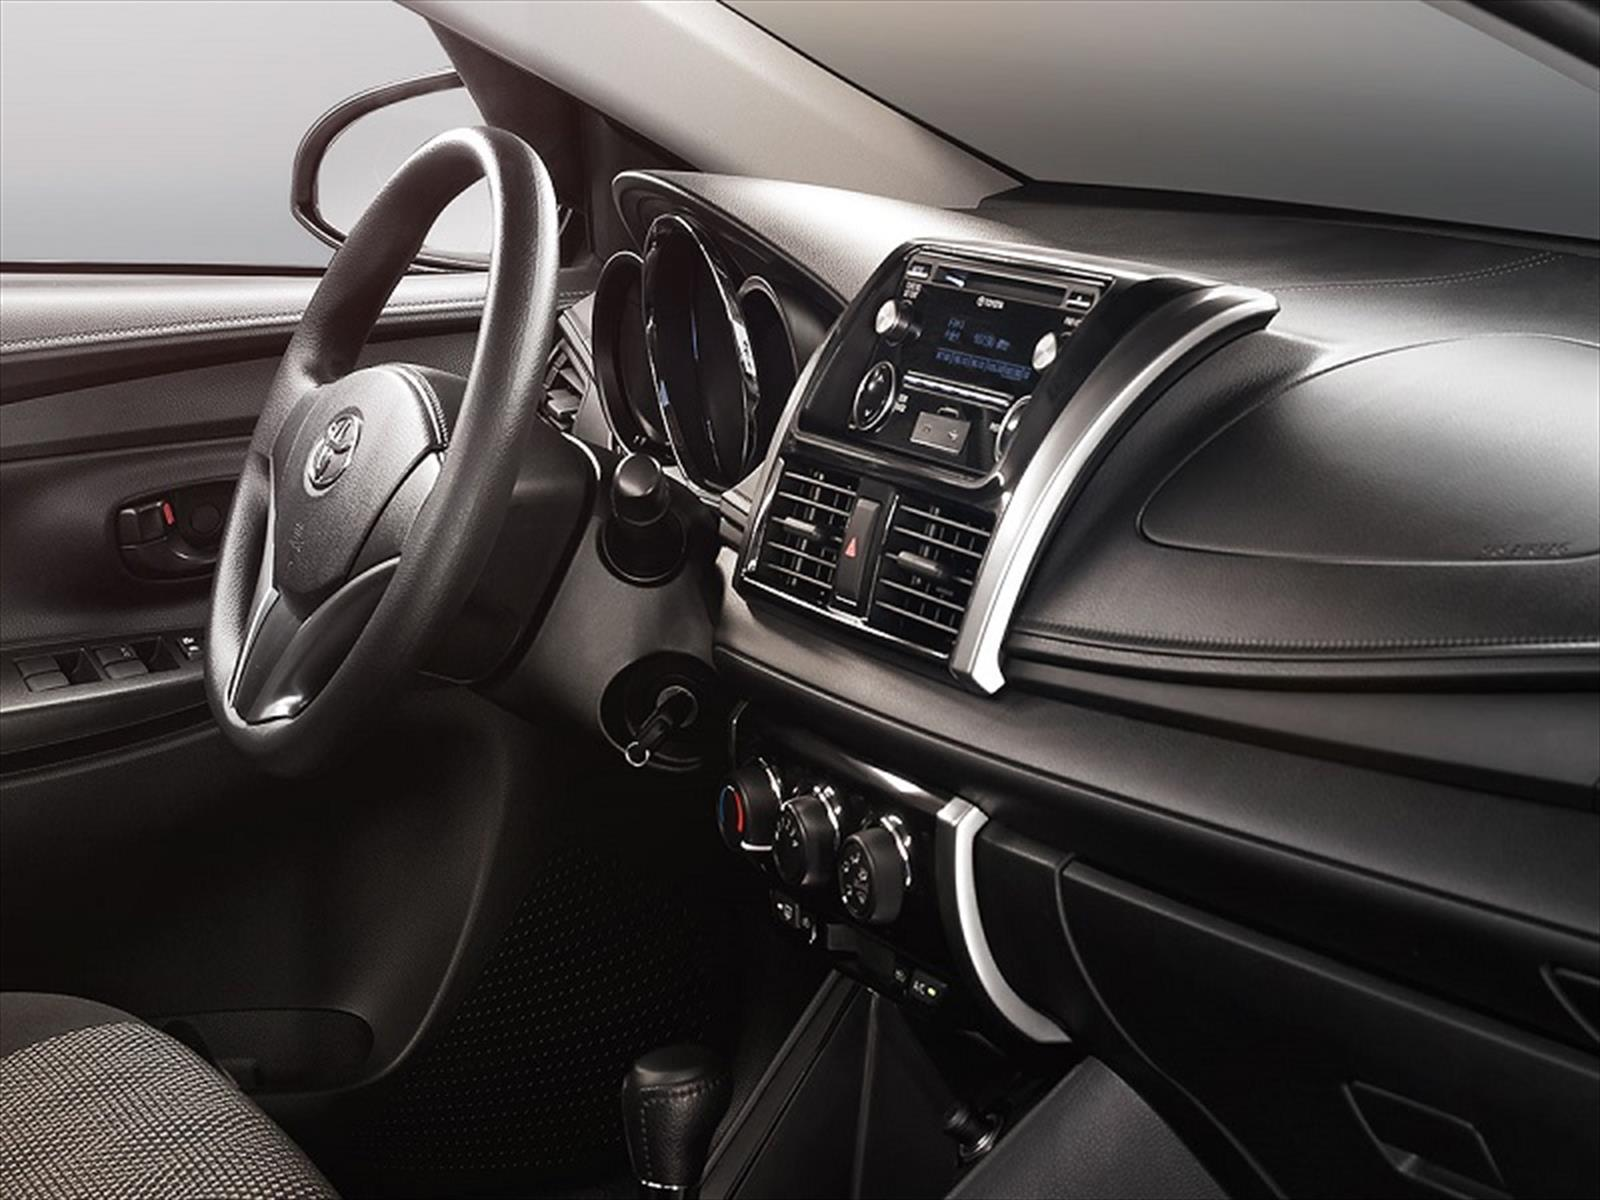 Toyota Yaris 2017 Interior